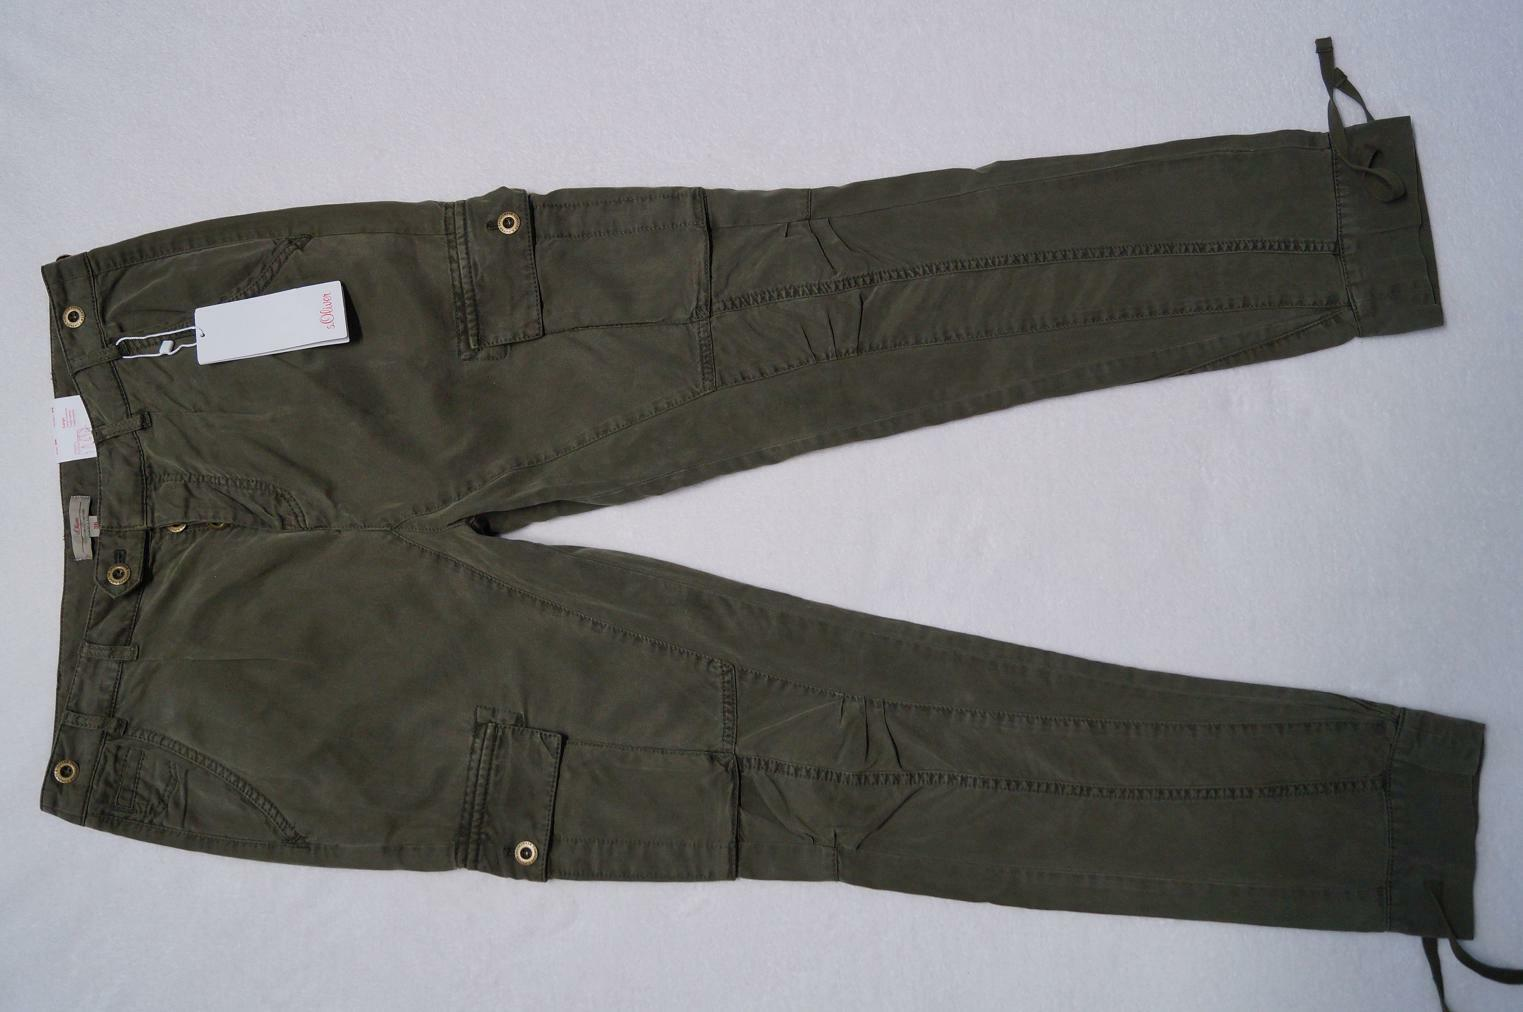 S. Oliver Cargo Trousers Cargo Hose Größe 36, 38, 40, 42, 44, 46 l32 4 Farbes NEW